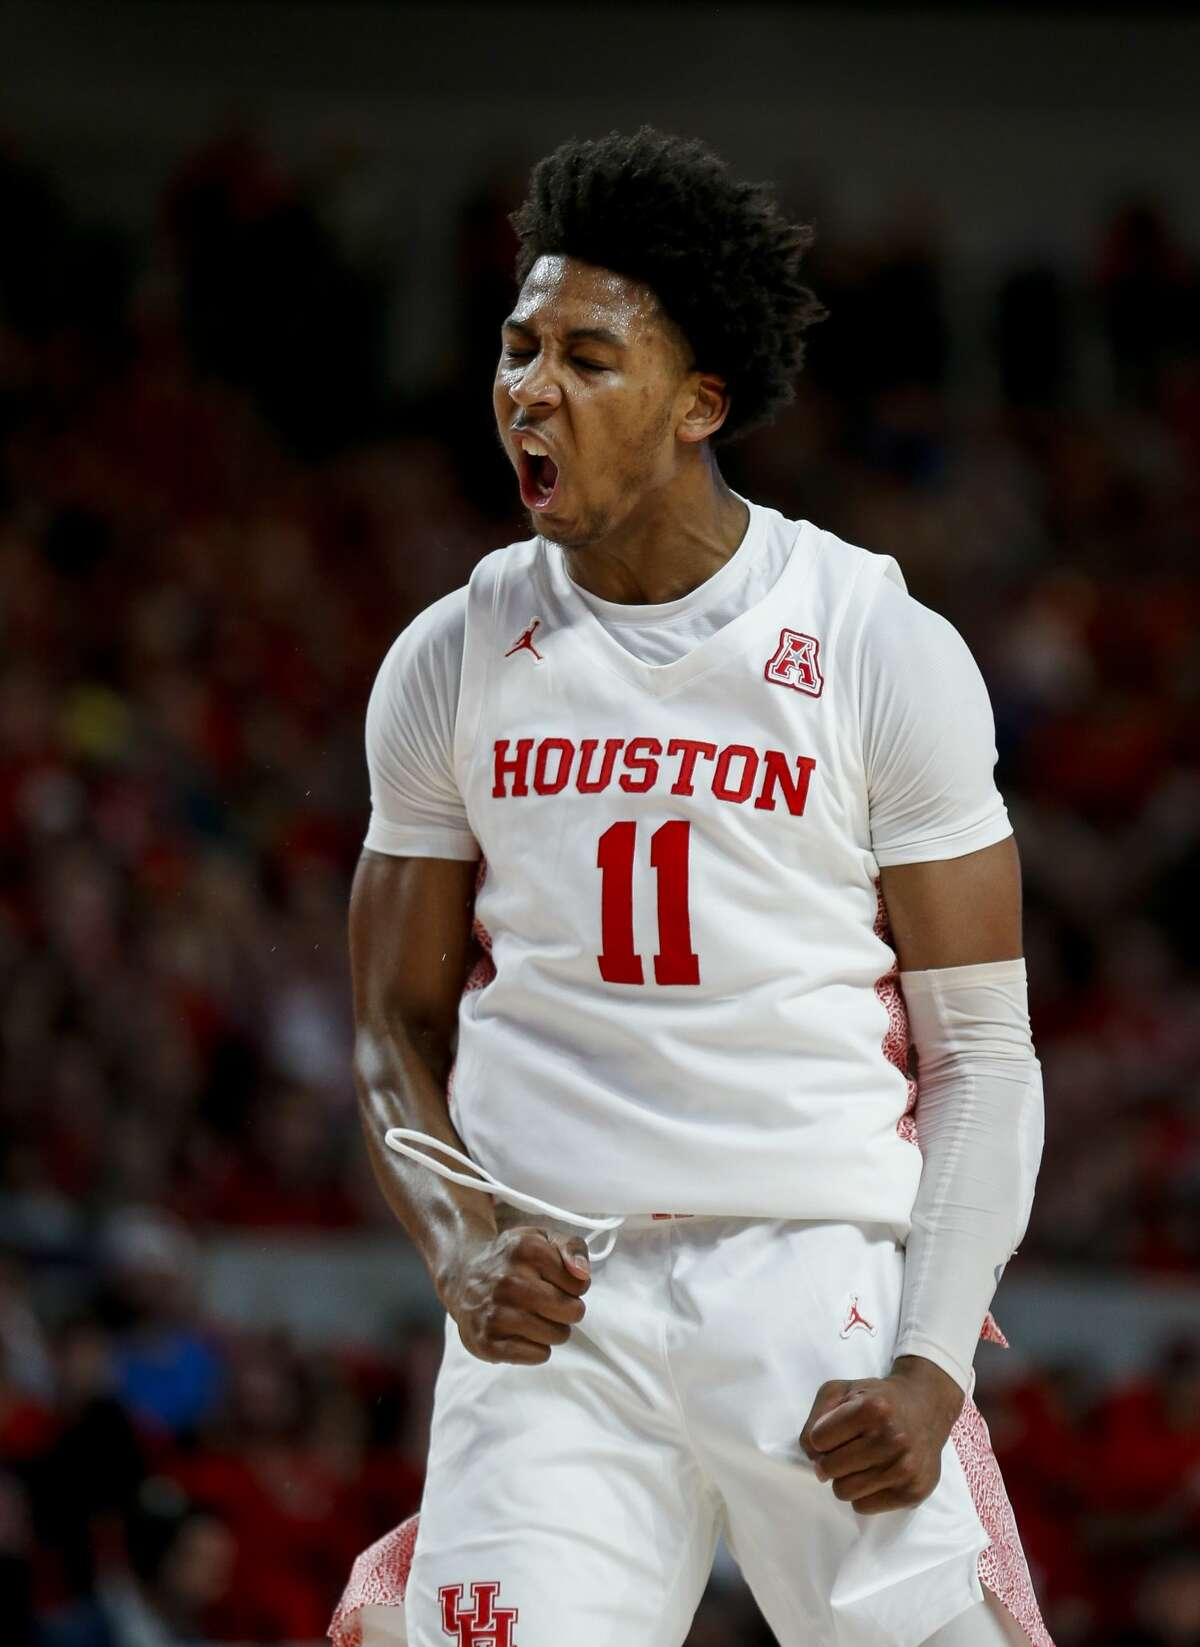 Houston Cougars guard Nate Hinton (11) celebrates after scoring to take the lead back against the UCF Knights during the first half of an NCAA game at the Fertitta Center Friday, Jan. 3, 2020, in Houston.